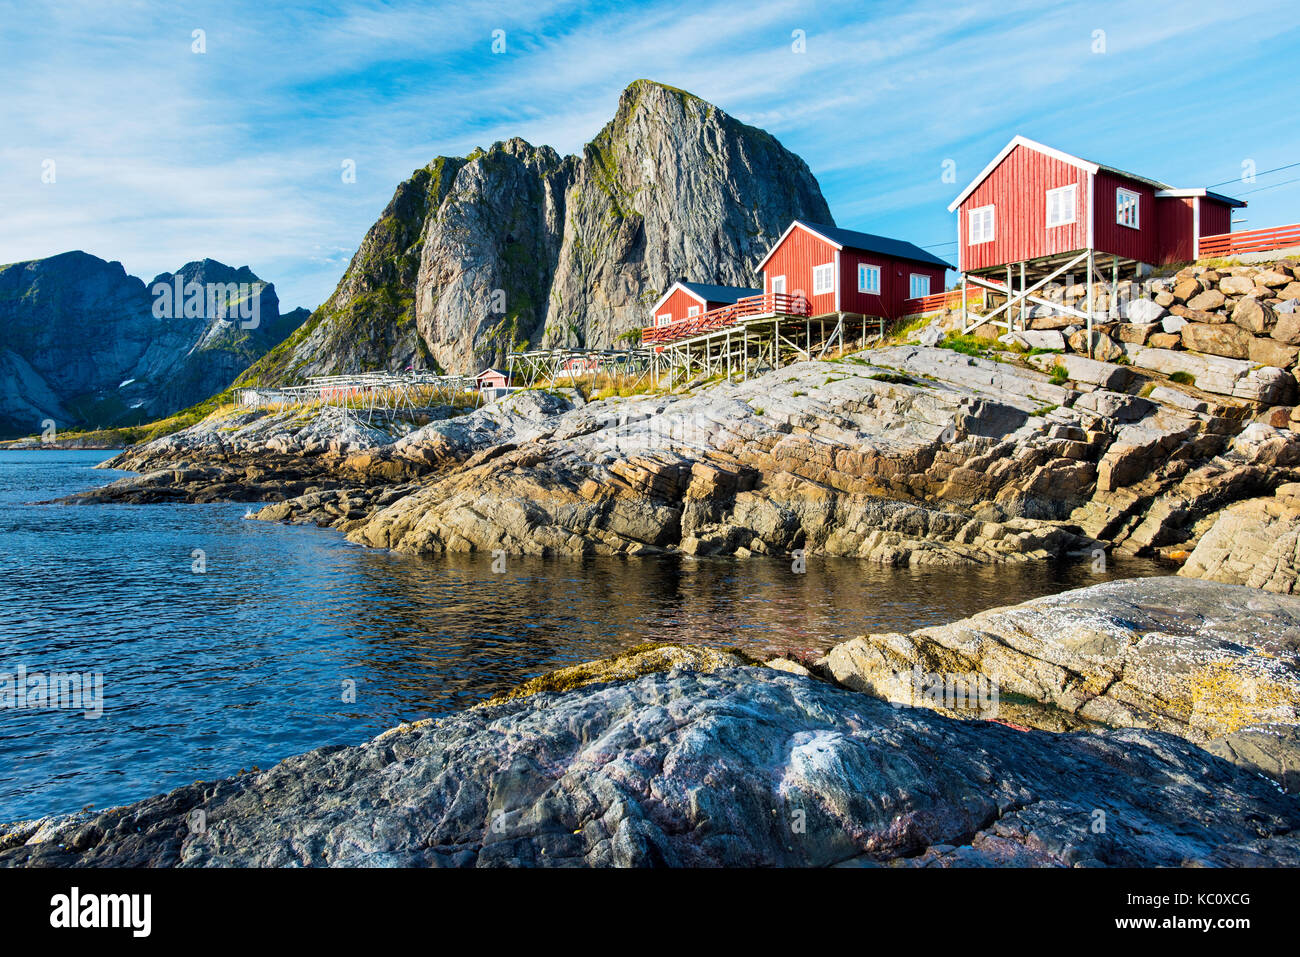 Rorbuer, traditional fisherman's cottages, in Reine, Norway Stock Photo